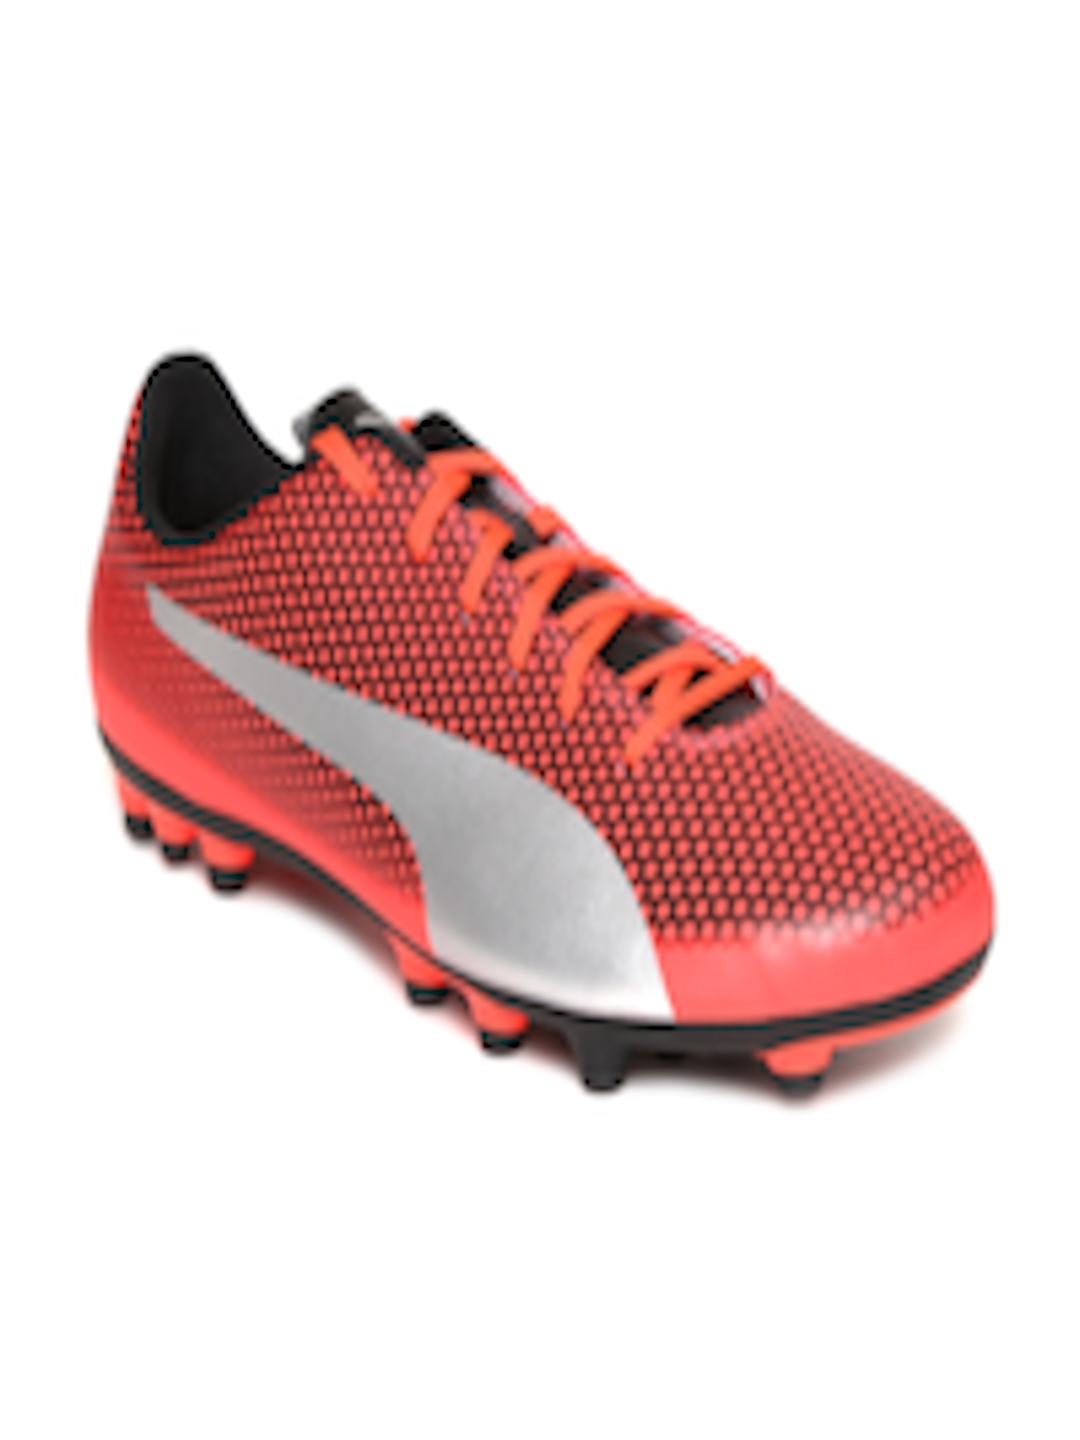 124cc9fcfab Buy Puma Men Red Spirit Artificial Grass Football Shoes - - Footwear for Men